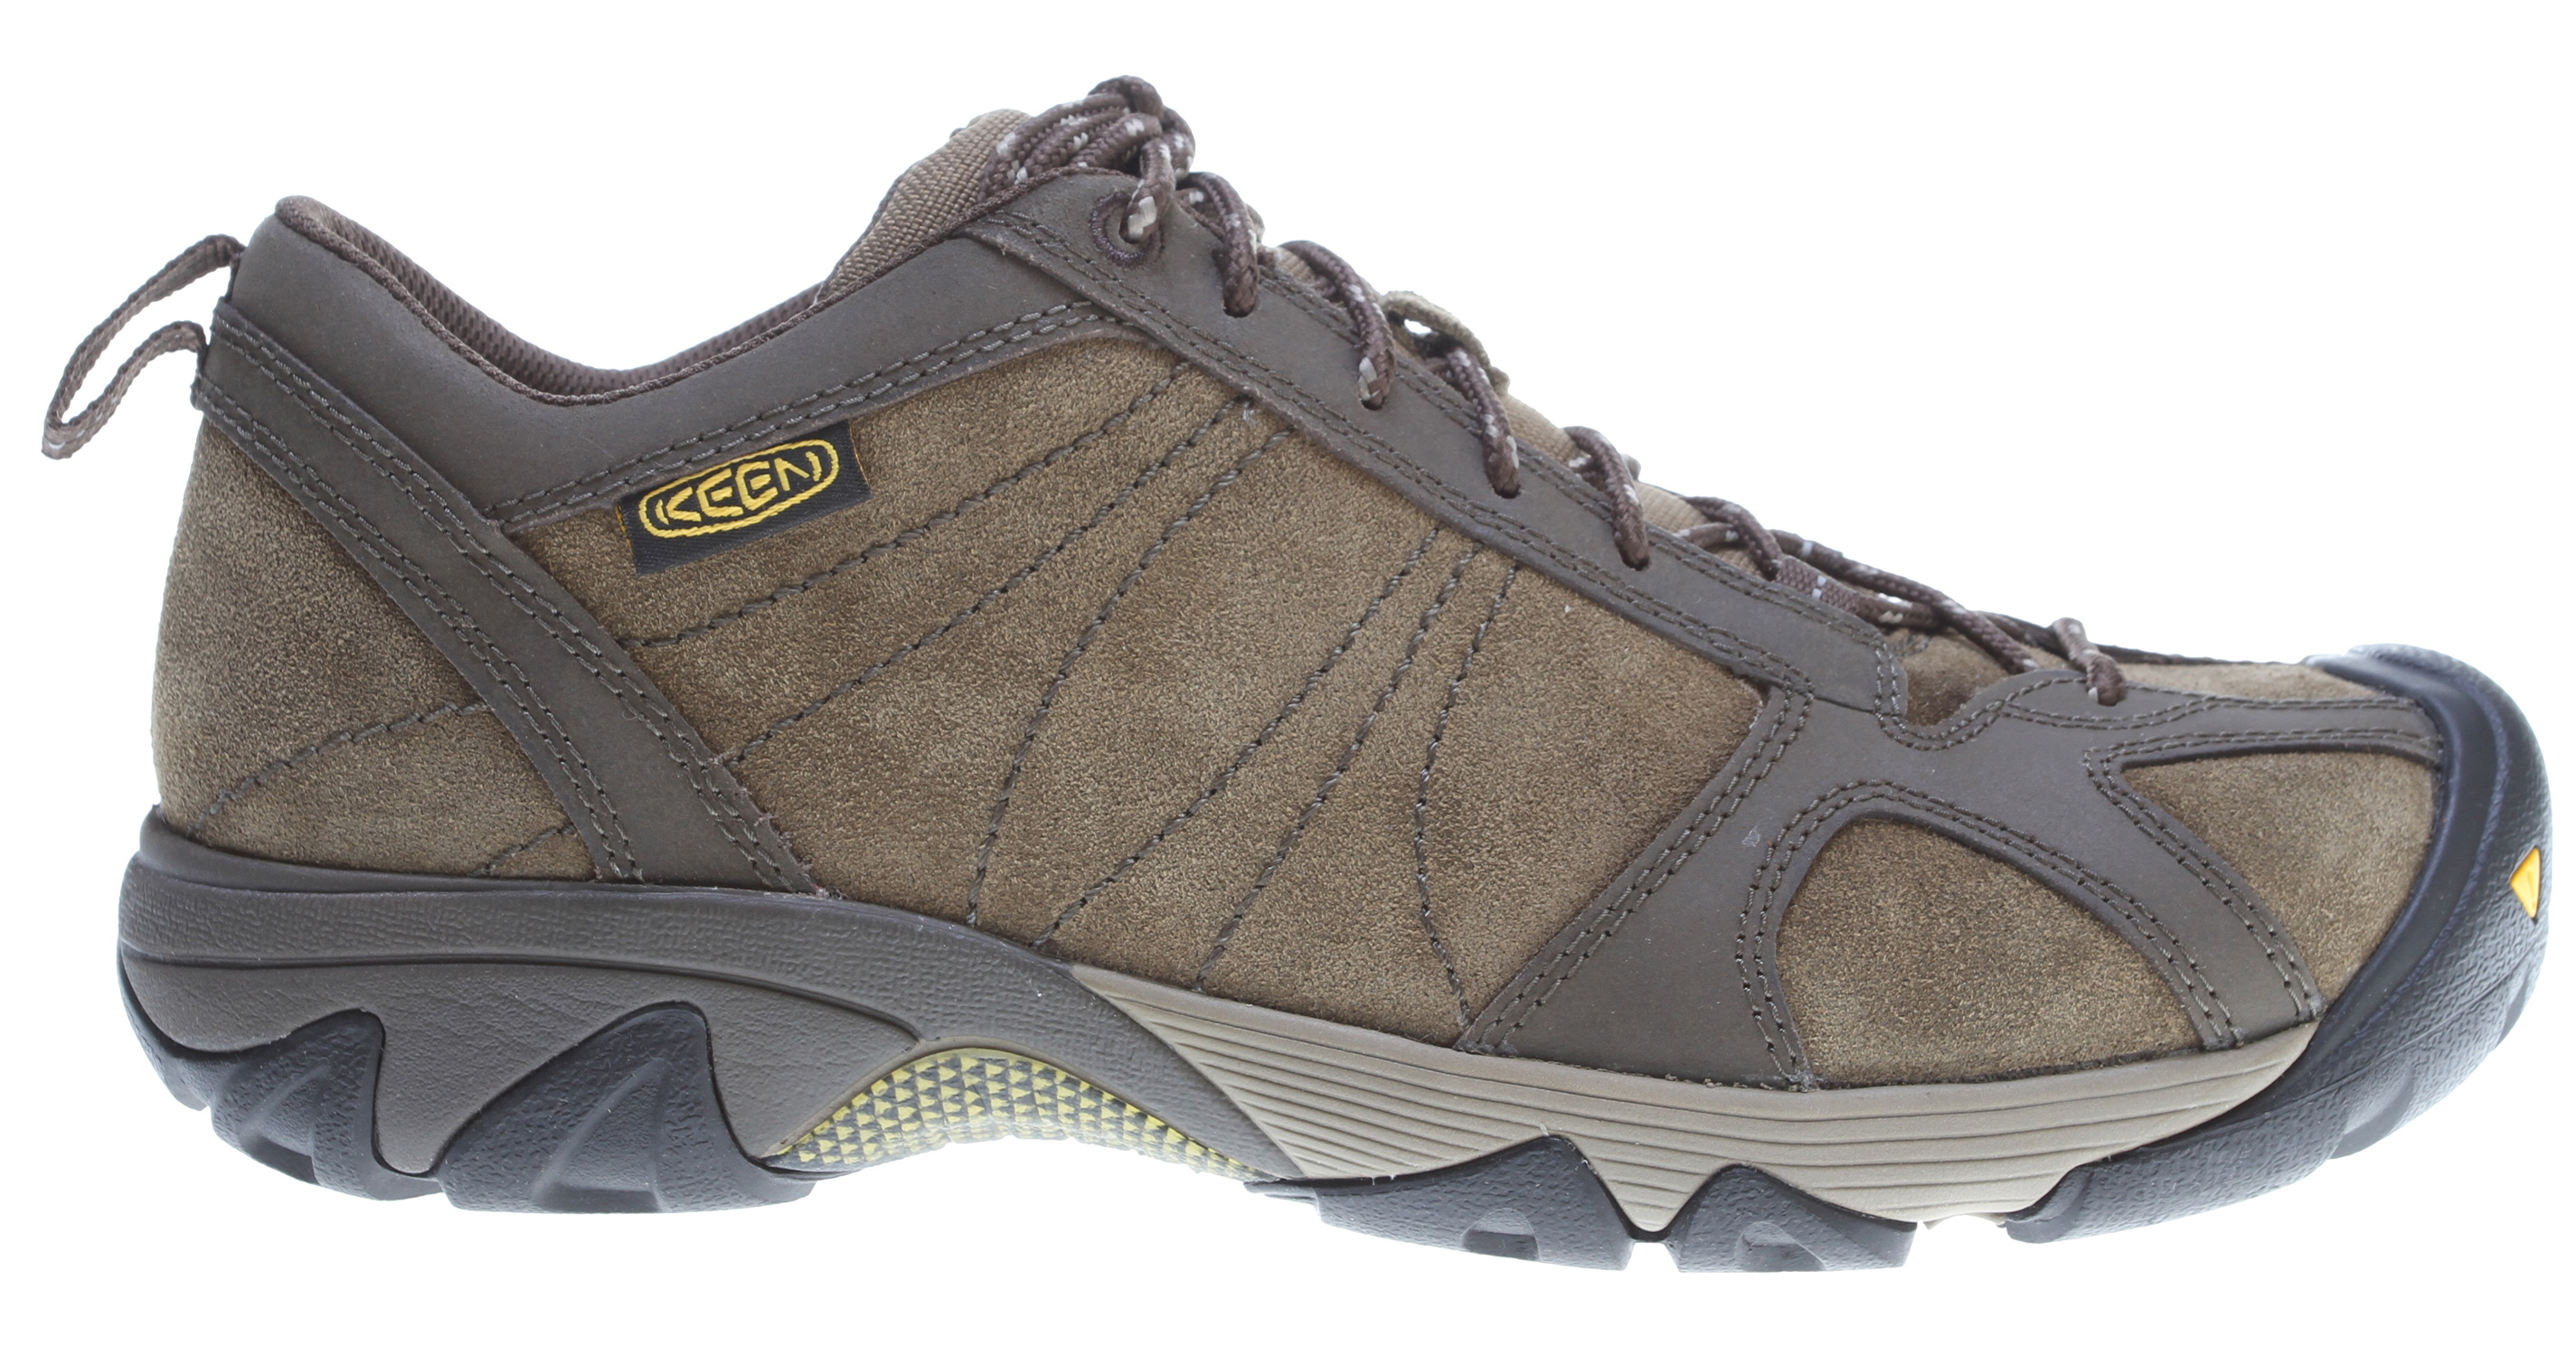 Camp and Hike It's not just about where you're going, but how you get there. With the Ambler, featuring a semi-sticky active-traction rubber sole and moisture-wicking textile lining, you'll get there in ease whether it's steep single track trails, a pile of boulders or dodging cacti. A perfect light hiker.Key Features of the Keen Ambler Hiking Shoes: Care for Suede Gently brush the footwear with a dry soft sponge or hand towel to remove loose dirt and restore nap of suede and nubuck shoes on a regular basis. Stains should be treated immediately with a solvent-based suede/leather cleaner. This process may cause slight discoloration to the affected area. KEEN.Zorb Strobel Moisture wicking textile lining Non-marking rubber outsole Removable metatomical EVA footbed S3 Heel support structure Torsion stability ESS shank TPU stability shank Waxed suede upper with reinforced stitching S3: Shock, suspension, stability - otherwise known as S3 - is engineered to support the foot on impact, dissipate shock and reduce your odds of twisting an ankle. KEEN.CUSH: What if the inside of your shoe could mold to your feet? KEEN.CUSH is a blend of recycled PU, cork and memory foam that contours to feet and adjusts to give you the cushioning you need throughout your day. - $61.95